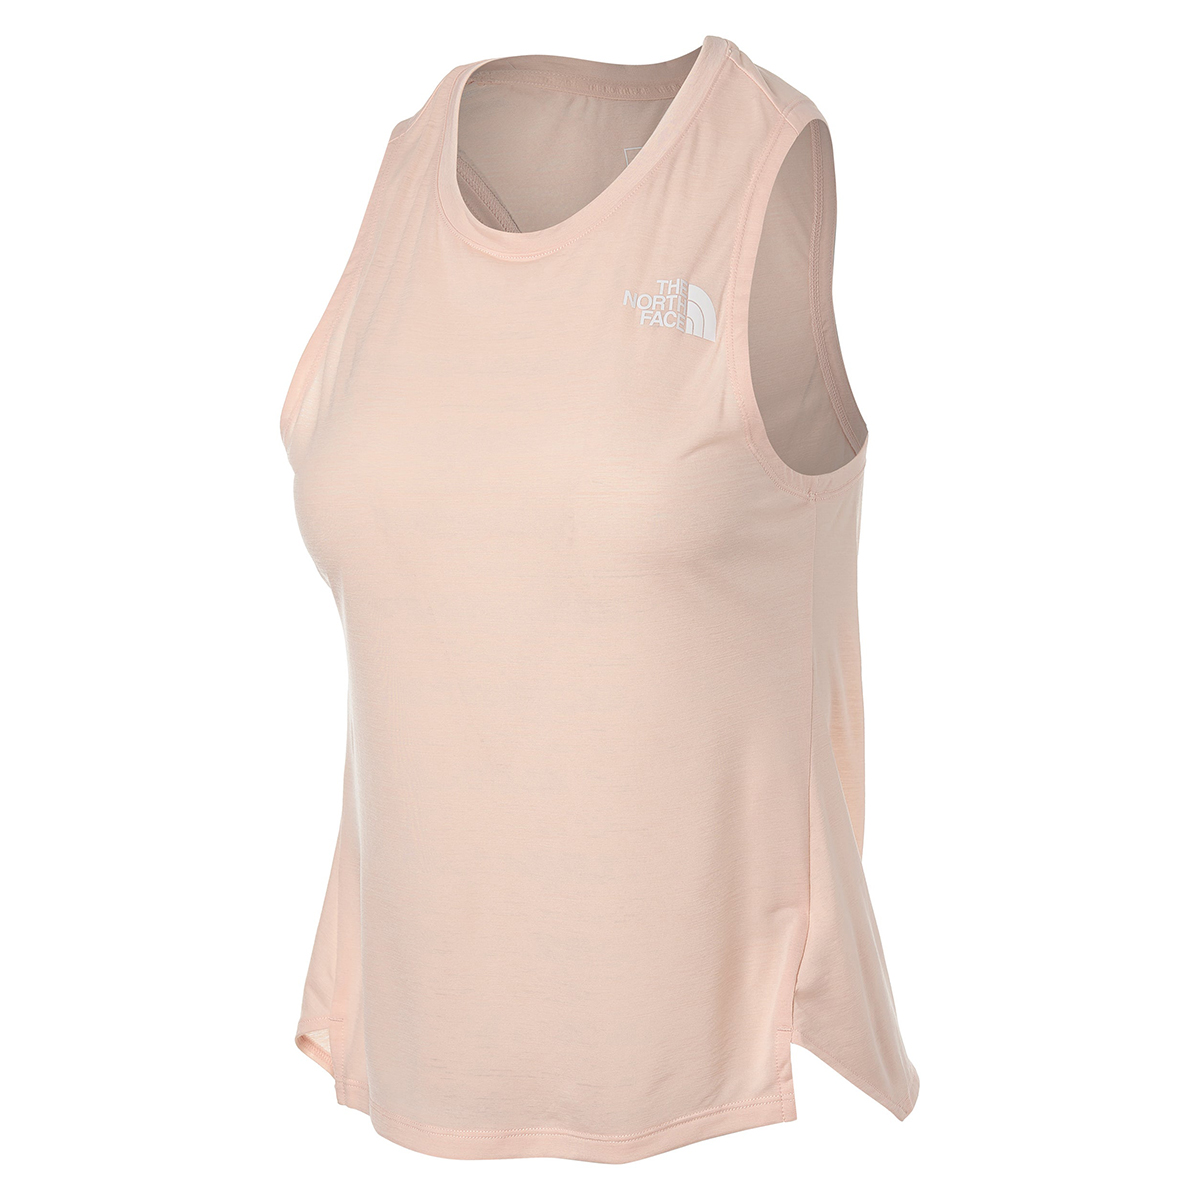 Women's The North Face Up With The Sun Tank - Color: Evening Sand Pink - Size: S, Evening Sand Pink, large, image 1